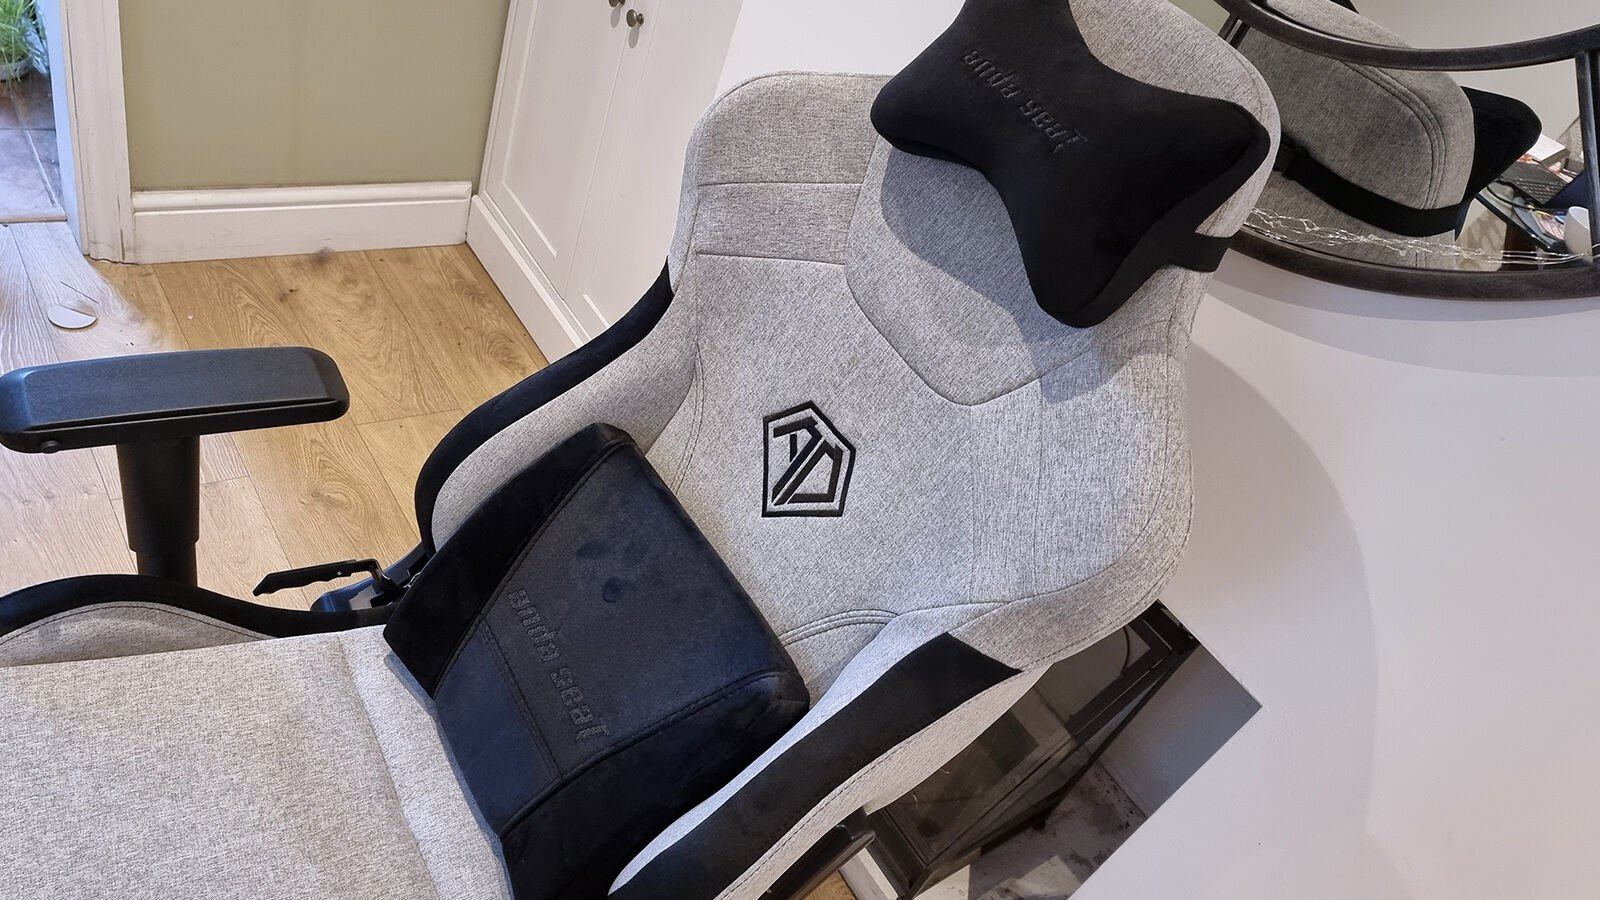 AndaSeat T Pro 2 cushions